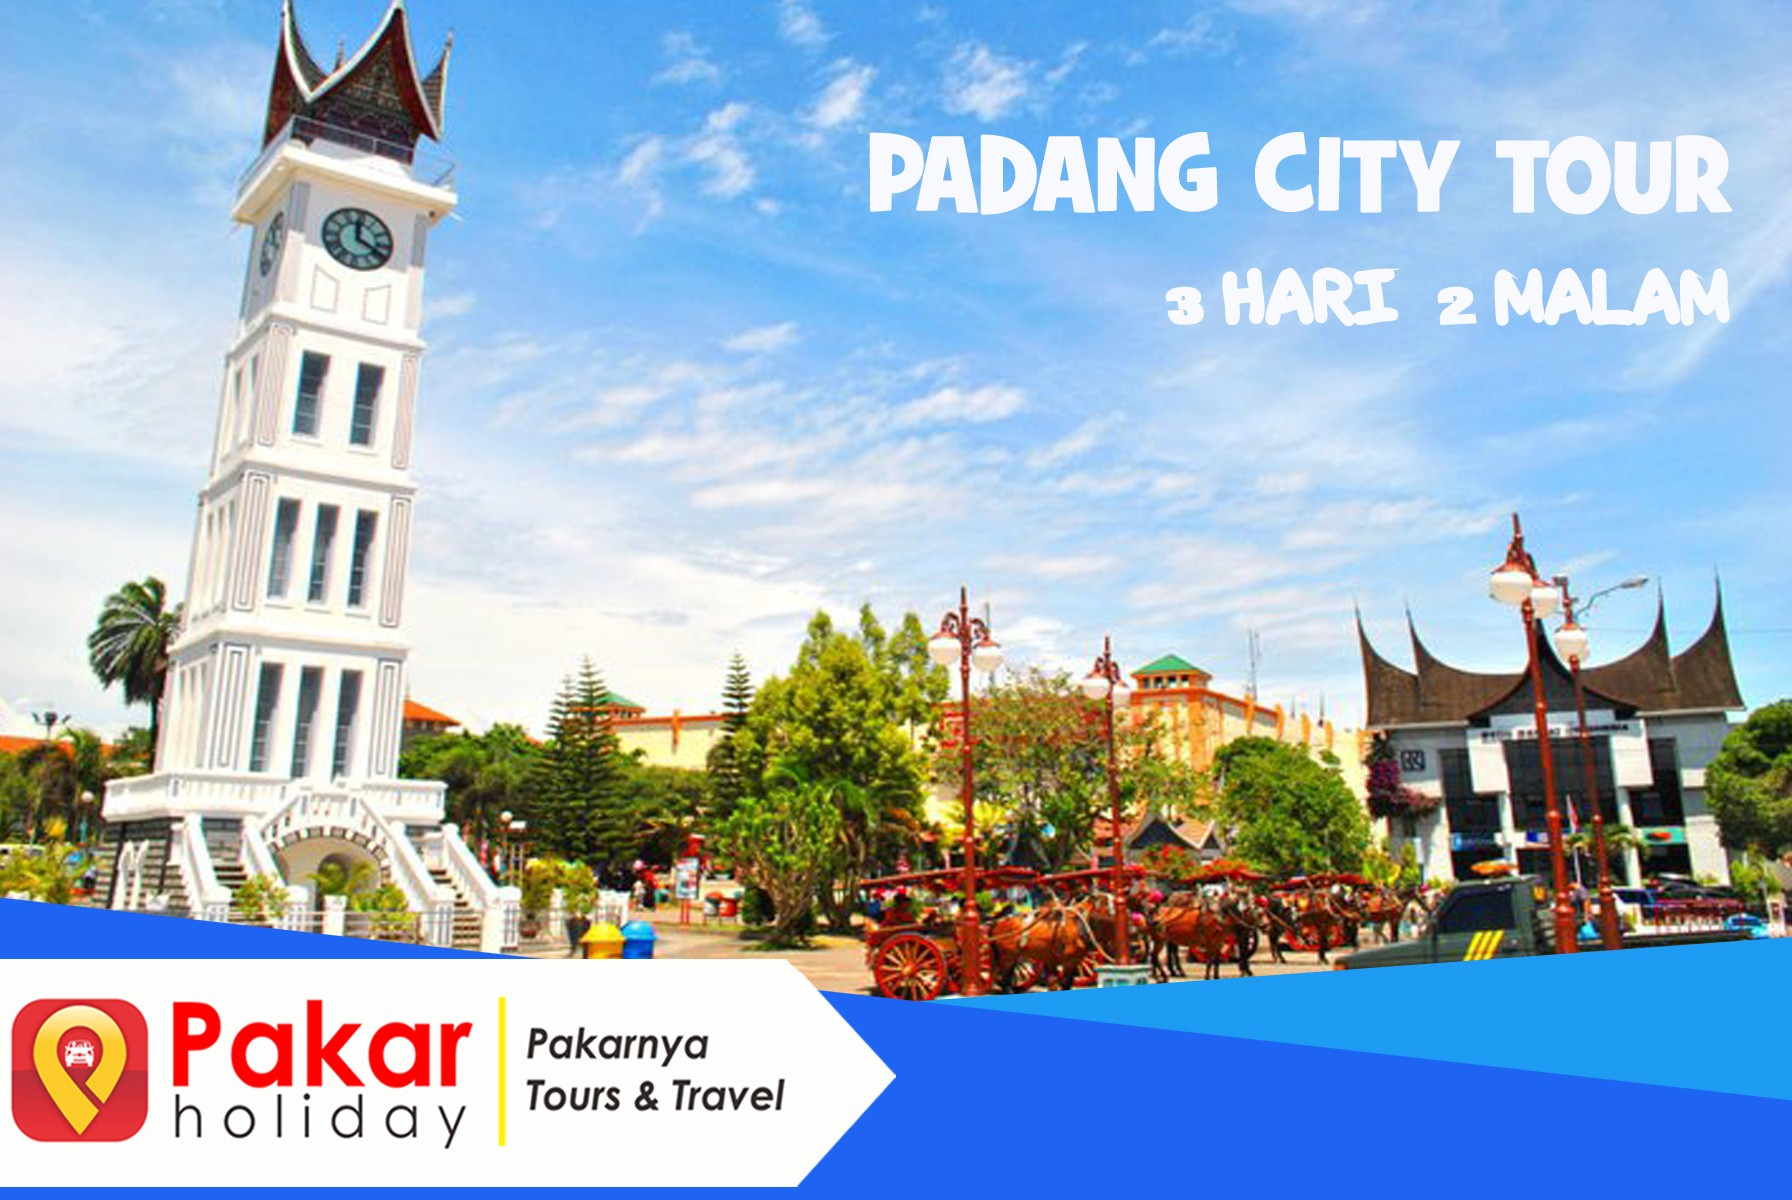 PADANG CITY TOUR